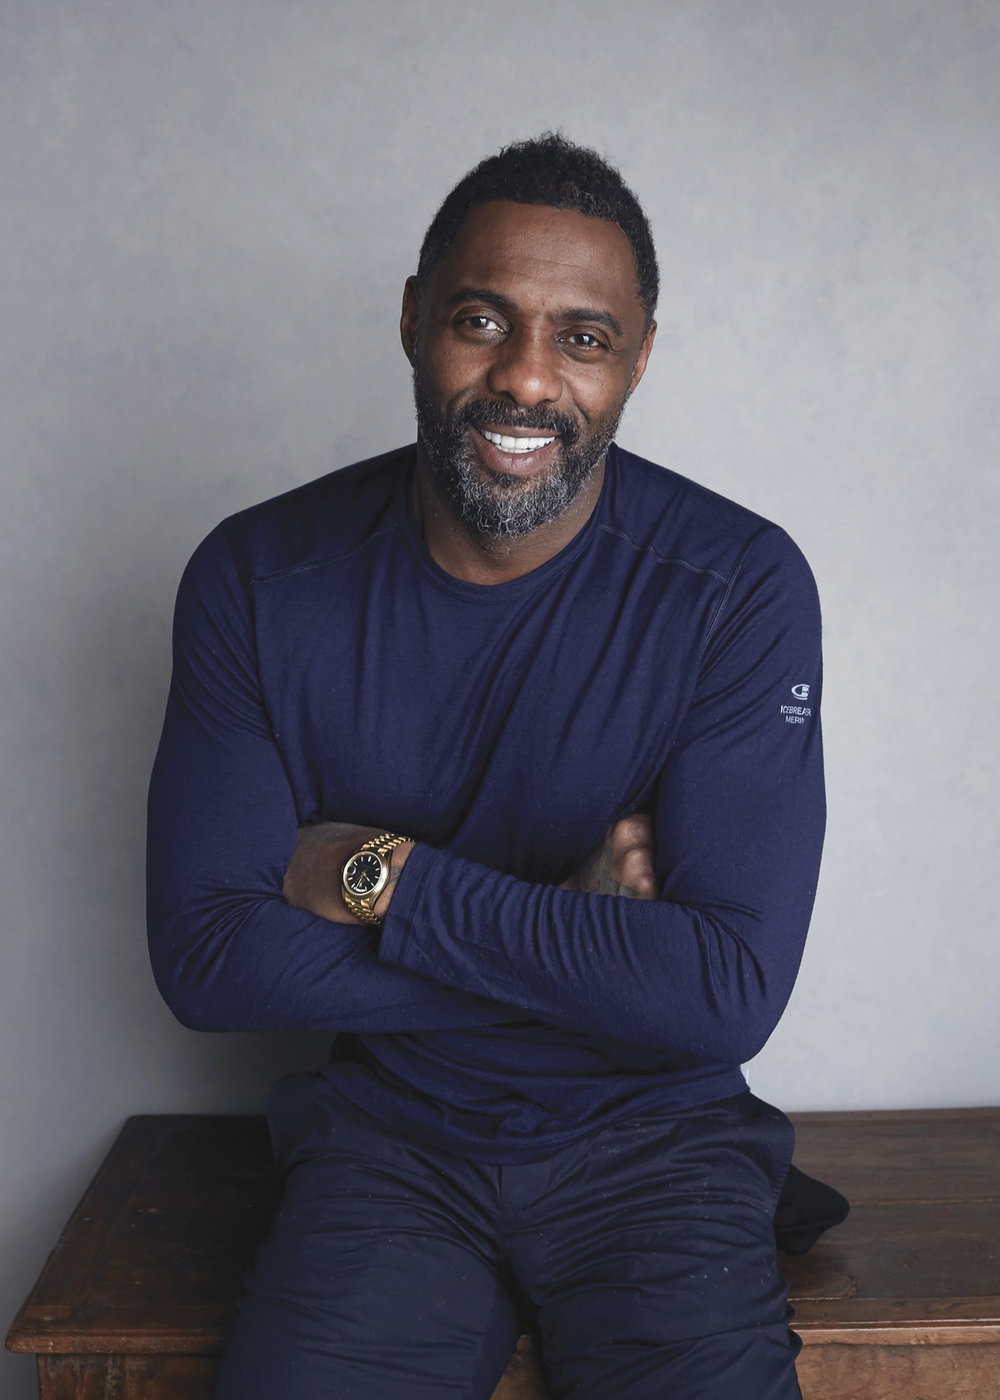 People magazine names Idris Elba 2018′s Sexiest Man Alive pic 2.jpg